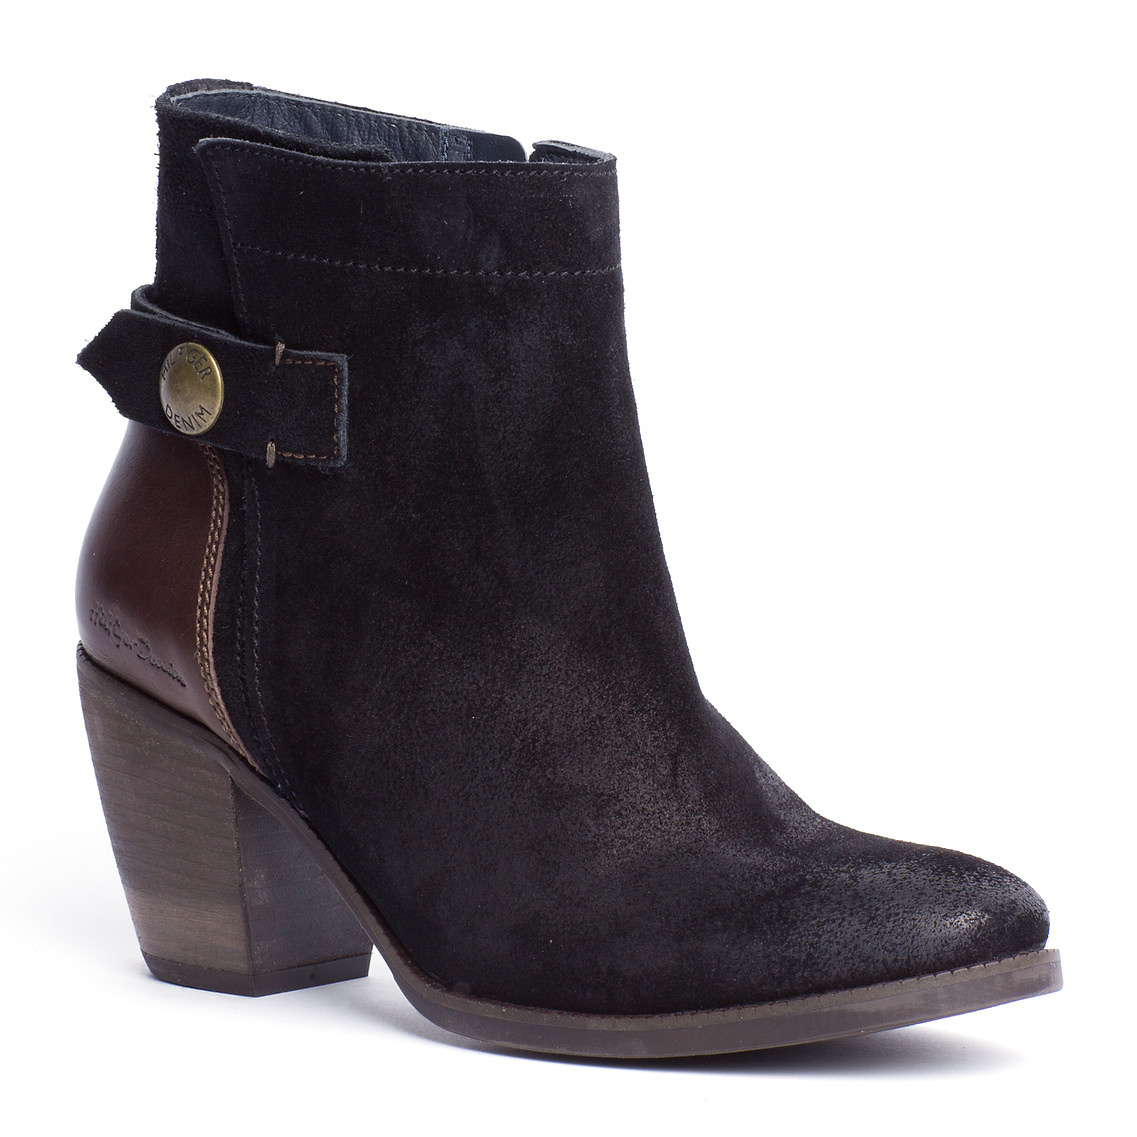 tommy hilfiger ivy ankle boots in black lyst. Black Bedroom Furniture Sets. Home Design Ideas